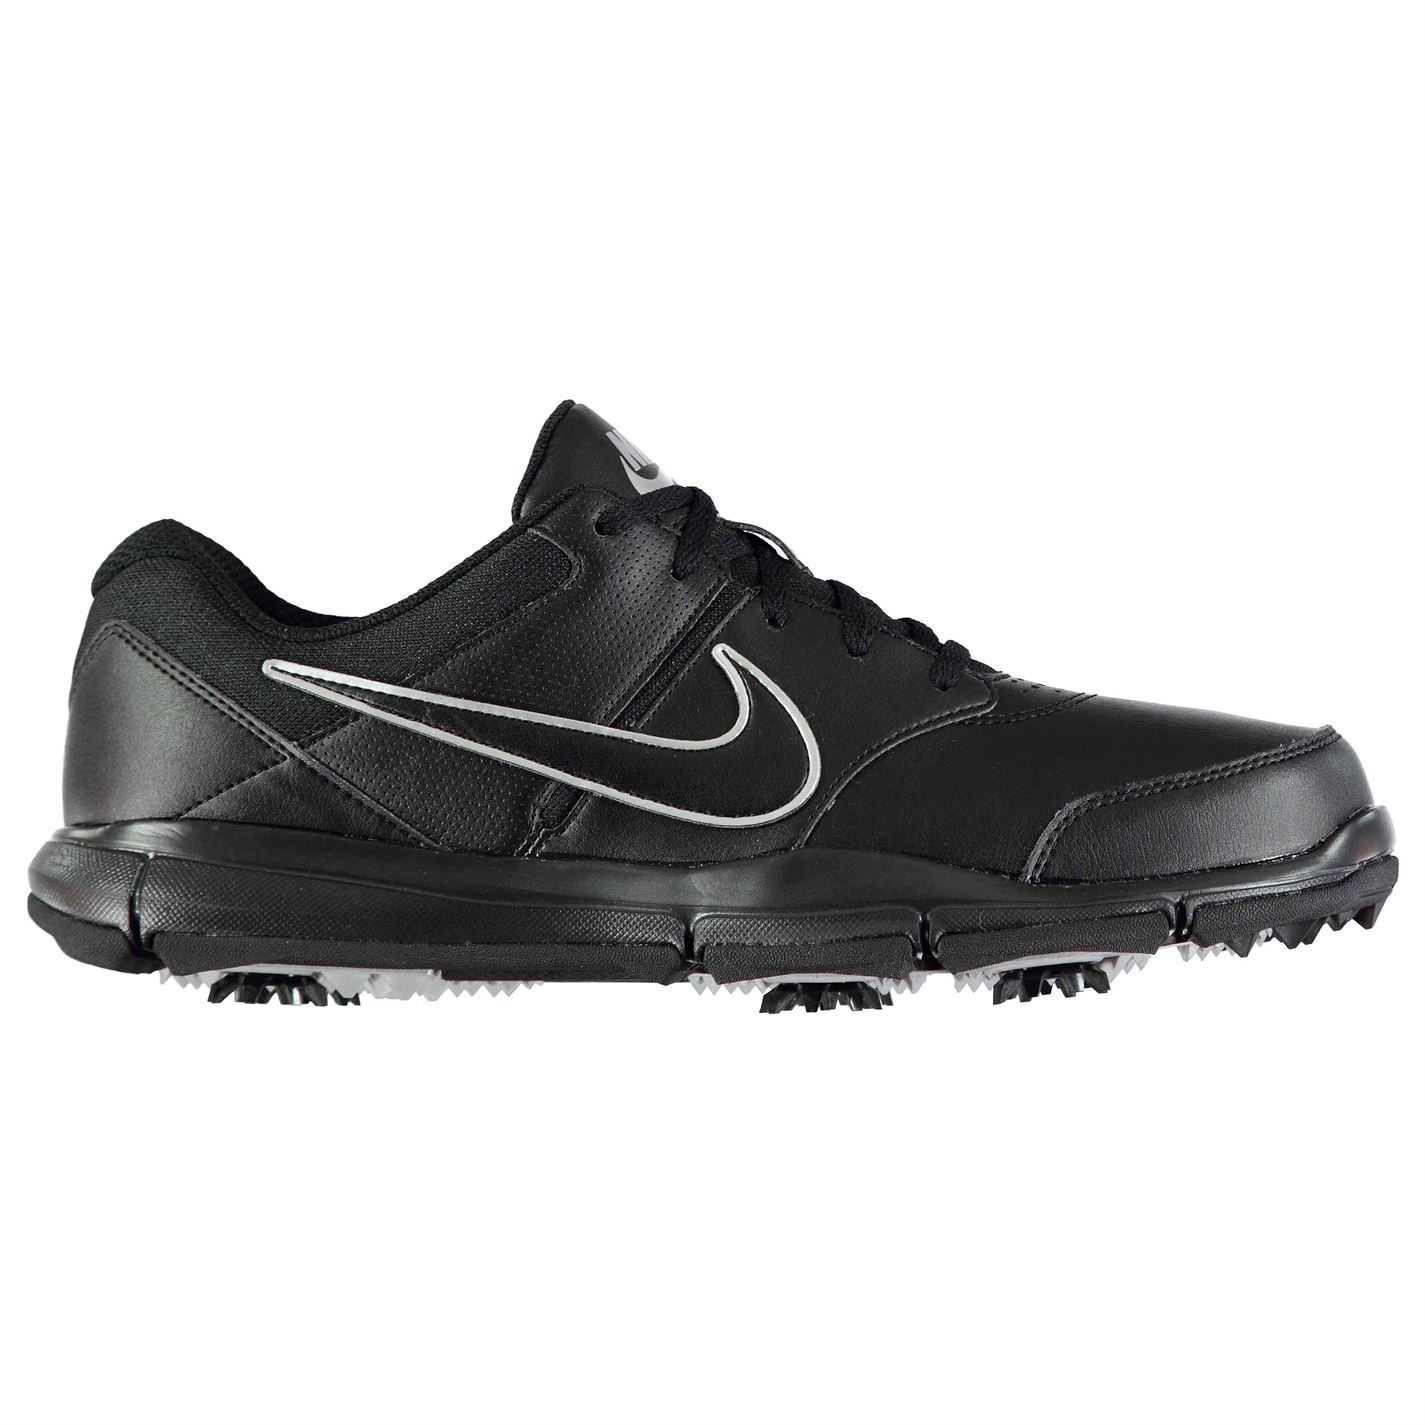 Nike-Durasport-4-Spiked-Golf-Shoes-Mens-Spikes-Footwear thumbnail 5